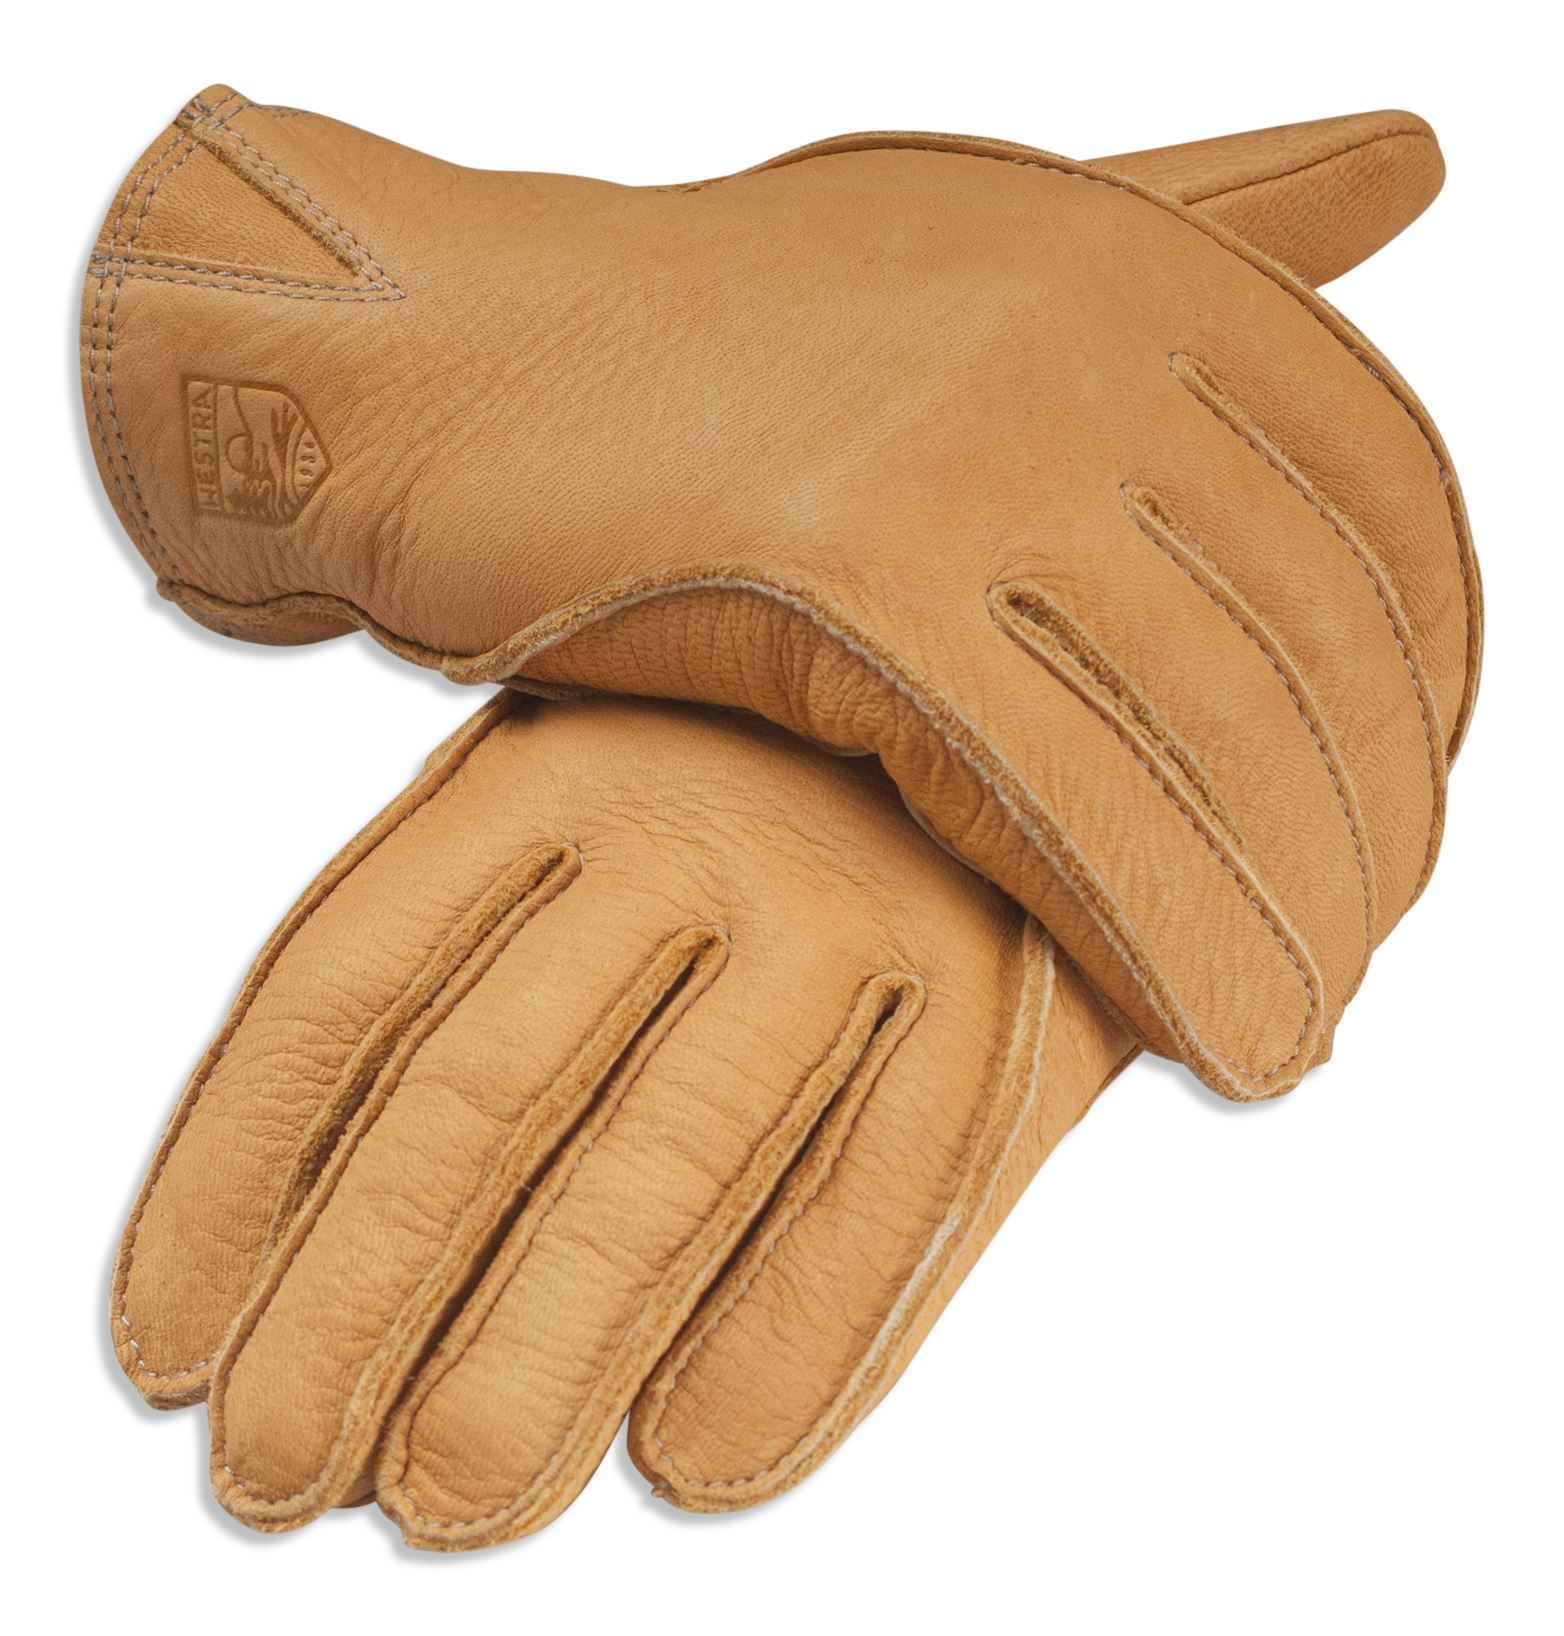 Dickies unlined leather work gloves gl0300 - Hestra Premium Mens Genuine Elk Leather Gloves Unlined Real Mora 2082